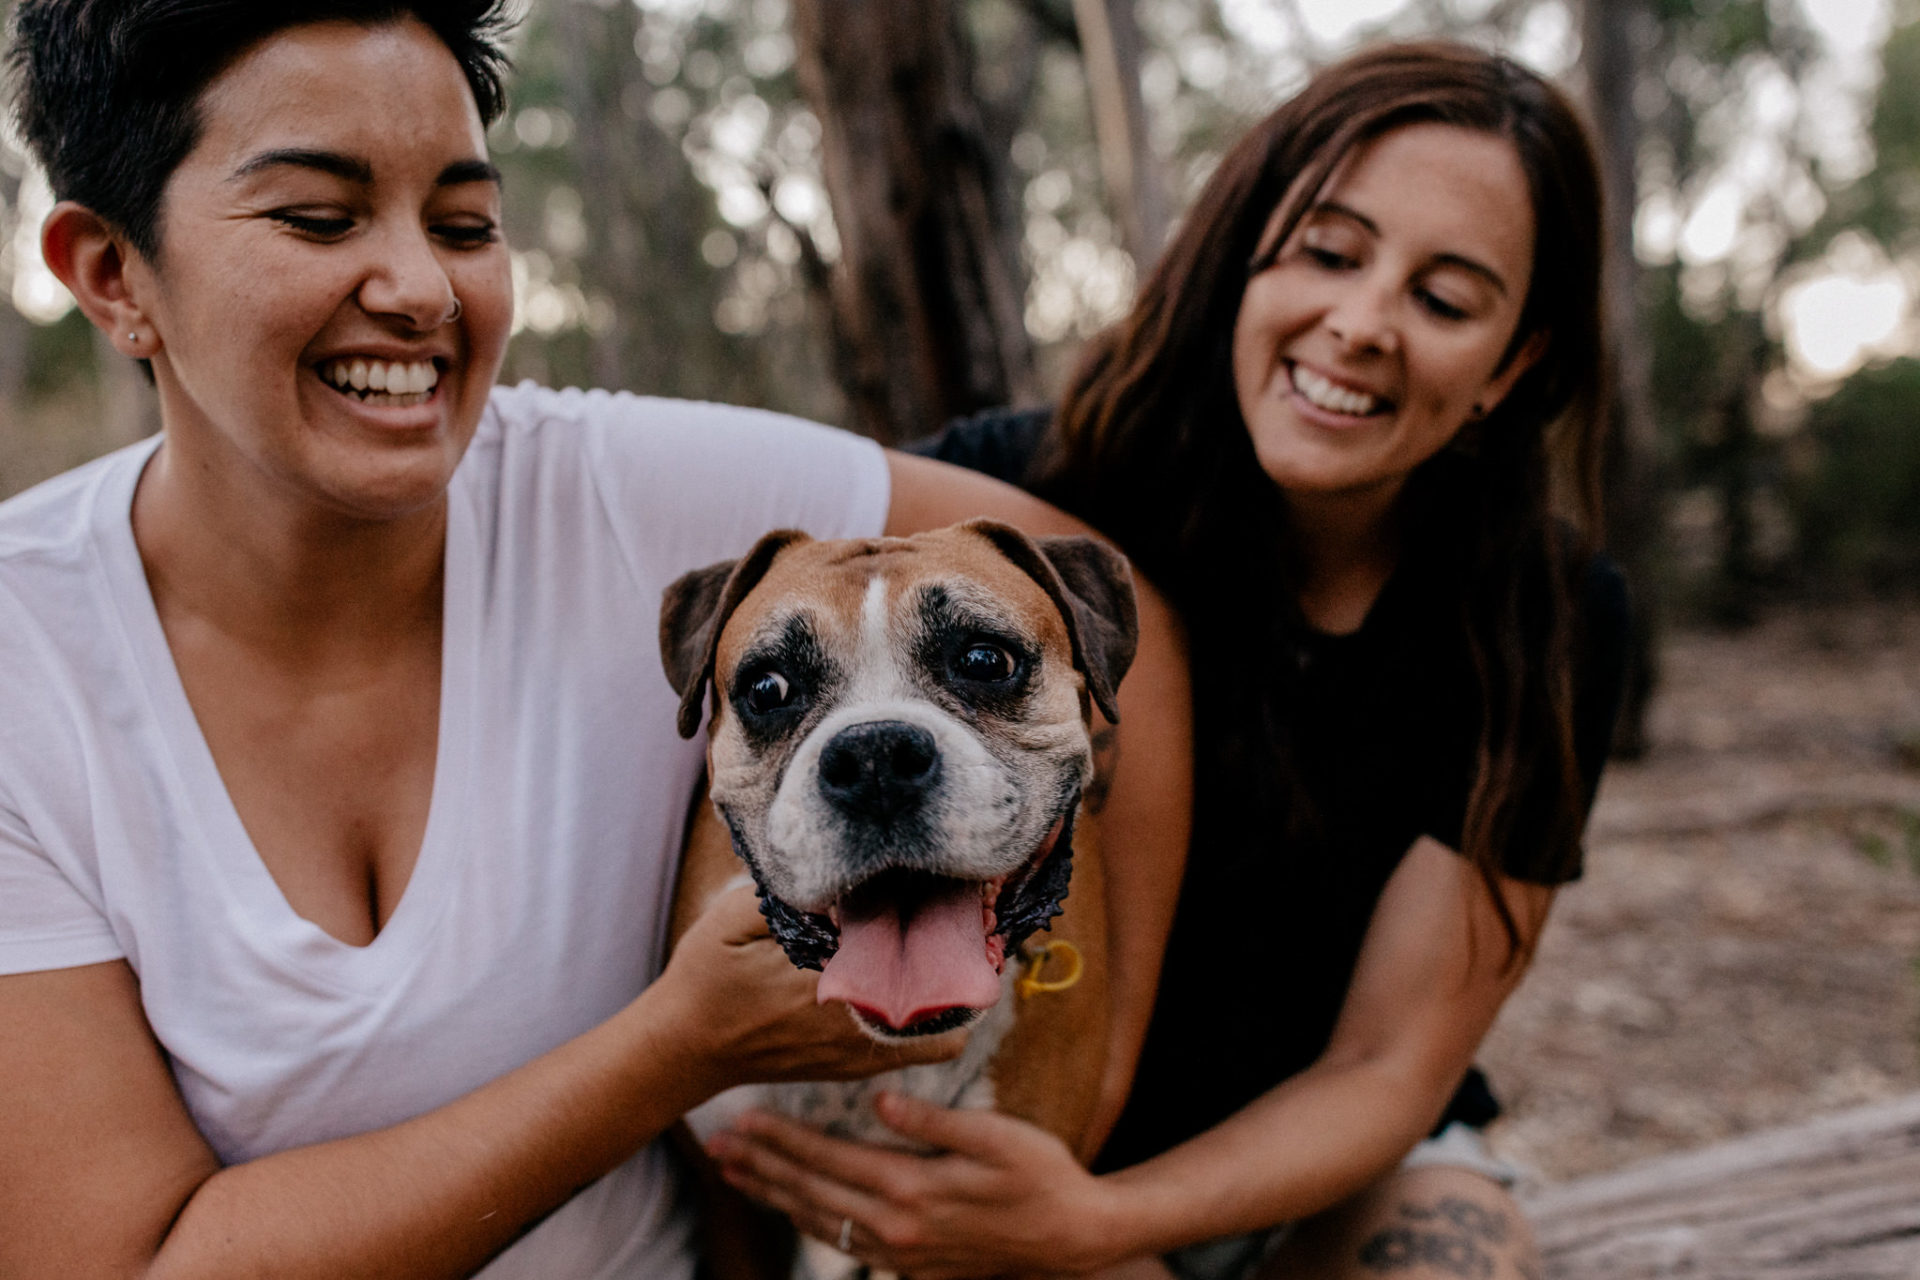 In Love Session Thornbury-engagement photos-lesbian-couple-with-dog-photo-shoot-lgbtq-friendly-wedding-photographer-melbourne